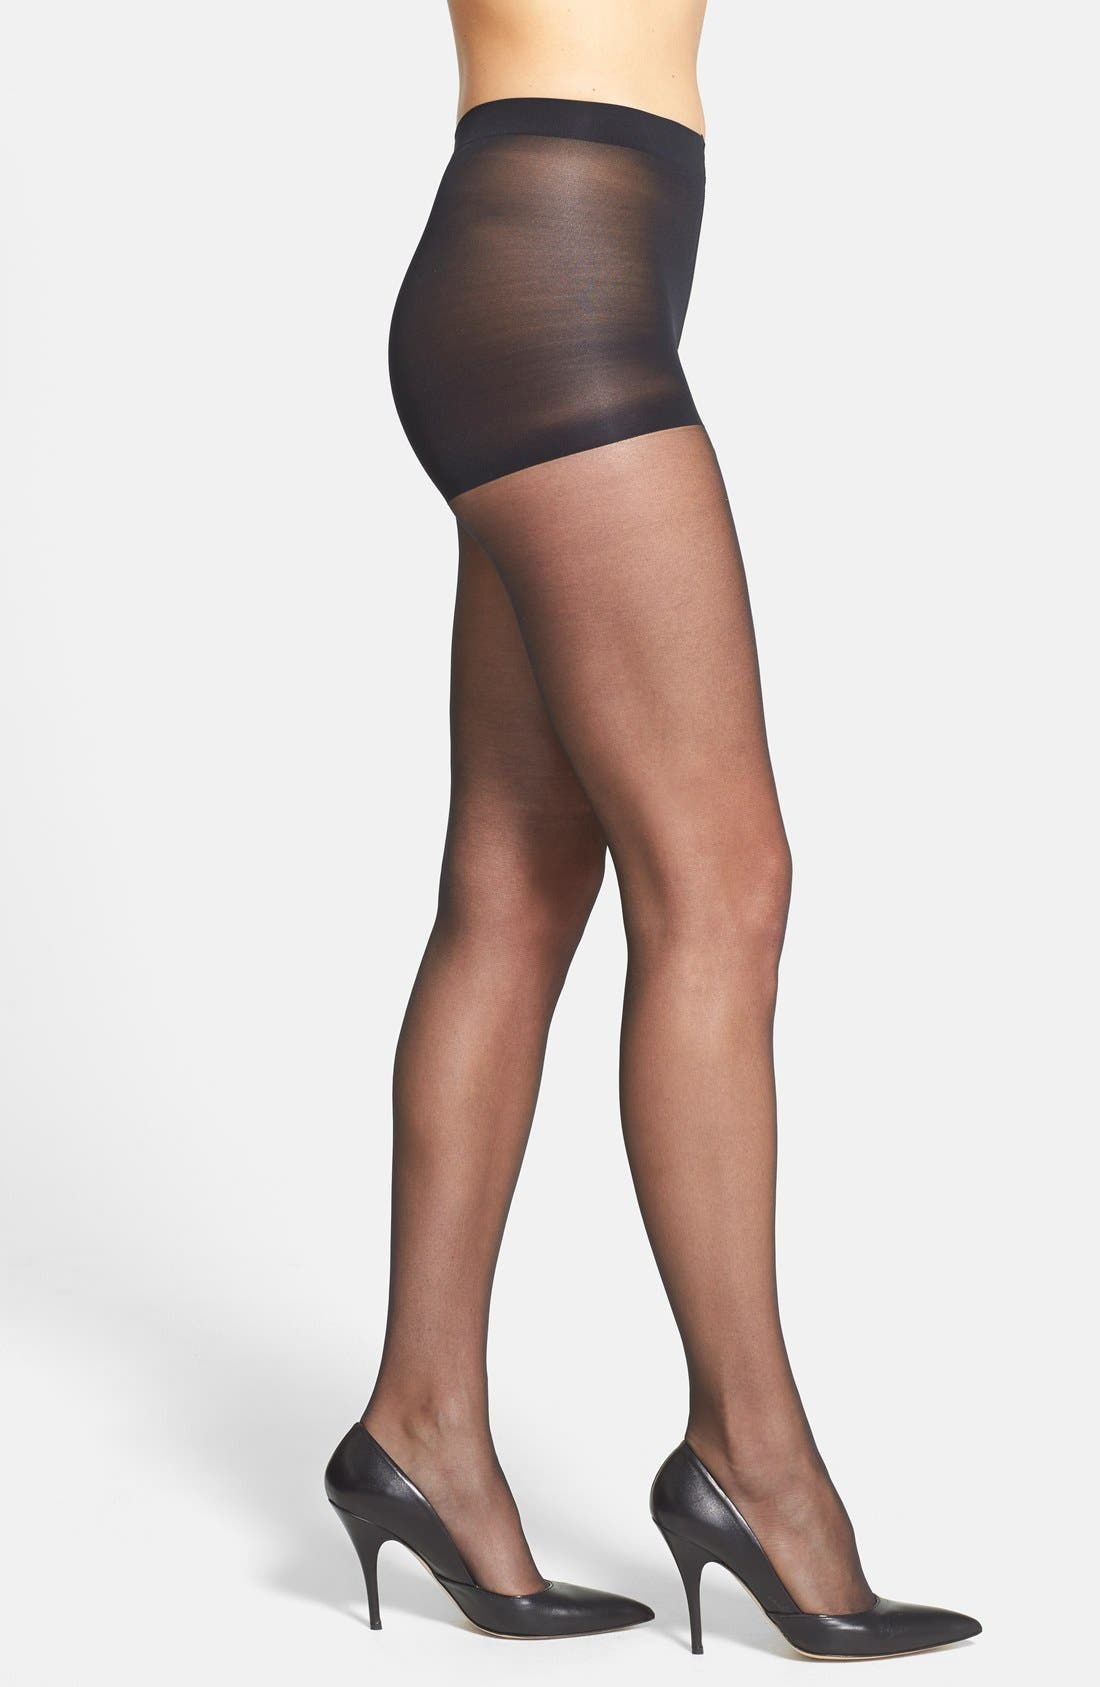 Main Image - Calvin Klein 'Ultra Bare - Infinite Sheer' Control Top Pantyhose